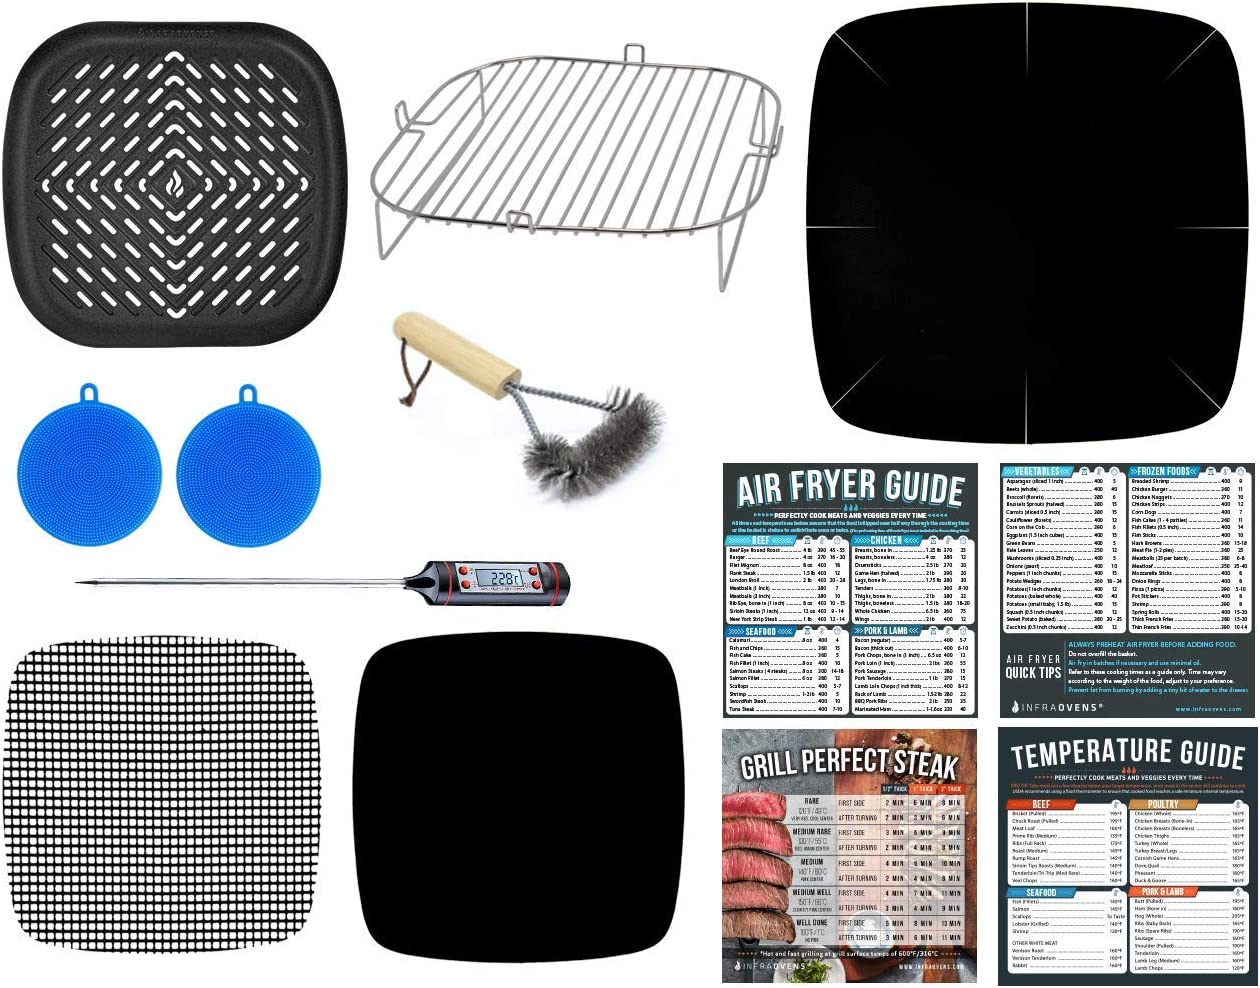 Air Fryer Rack Accessories Compatible with Paula Deen 10.5 QT, Power Airfryer Oven XL, Philips XXL, Secura, U Drive, Zokop 5.6 Quart, GoWise USA, Chefman Family Size 5.5 +More   With Cooking Guide